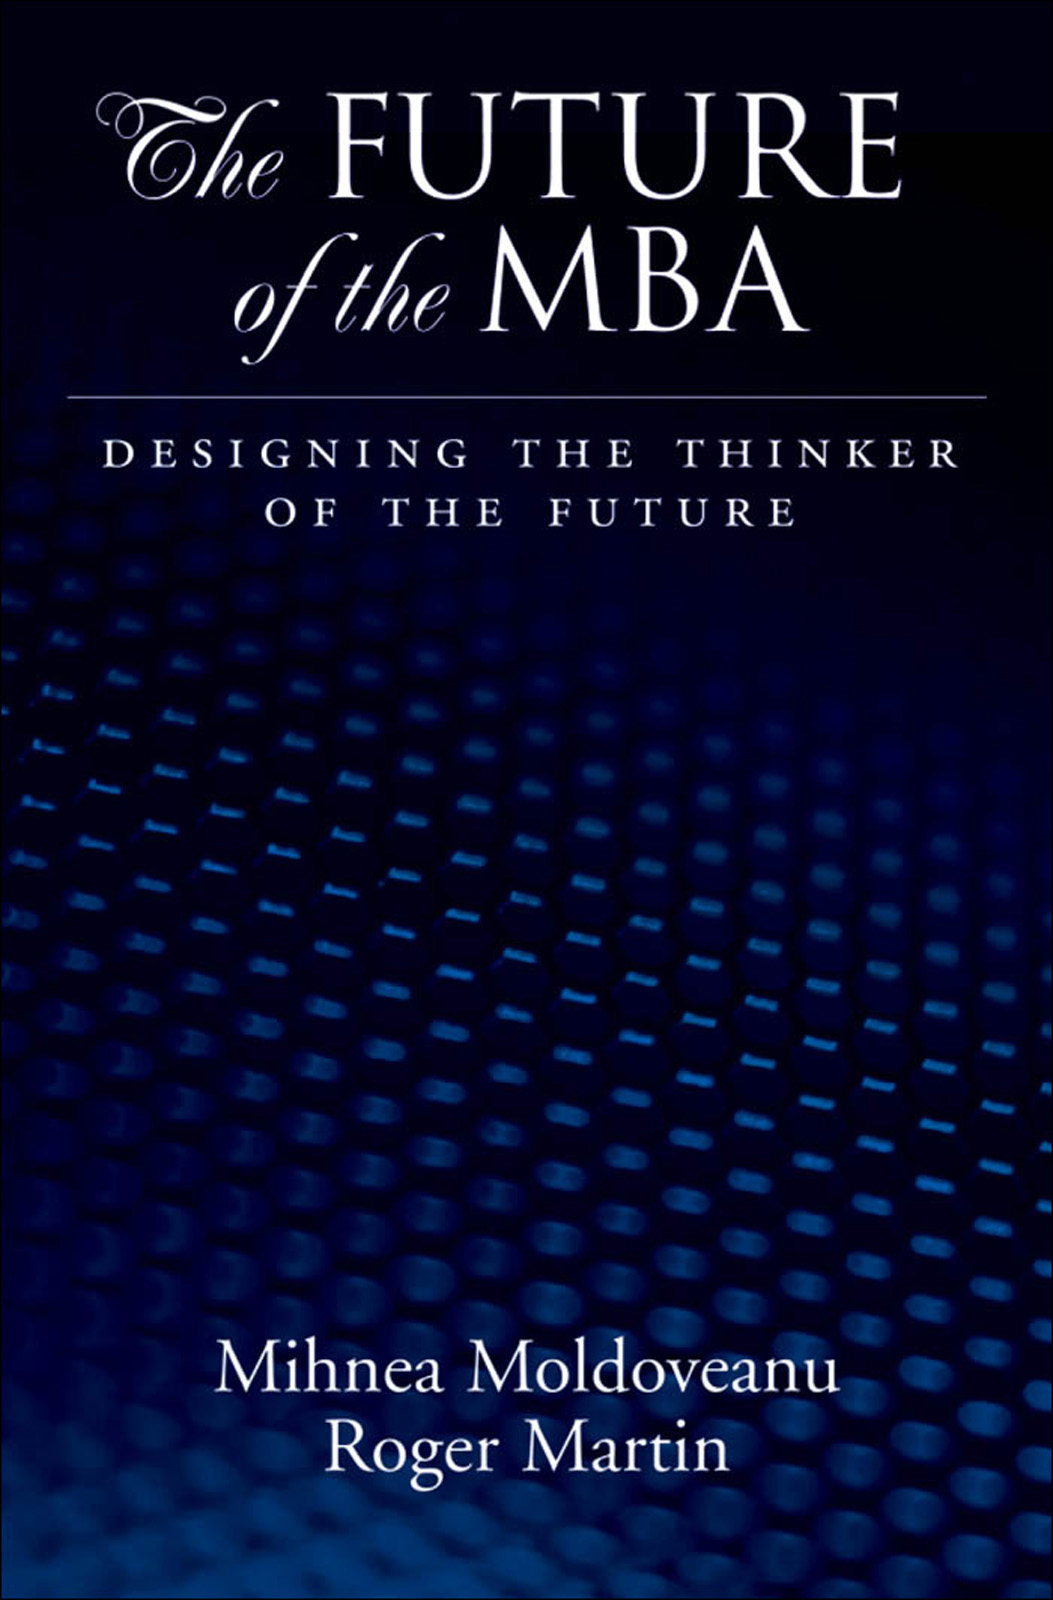 The Future of the MBA:Designing the Thinker of the Future